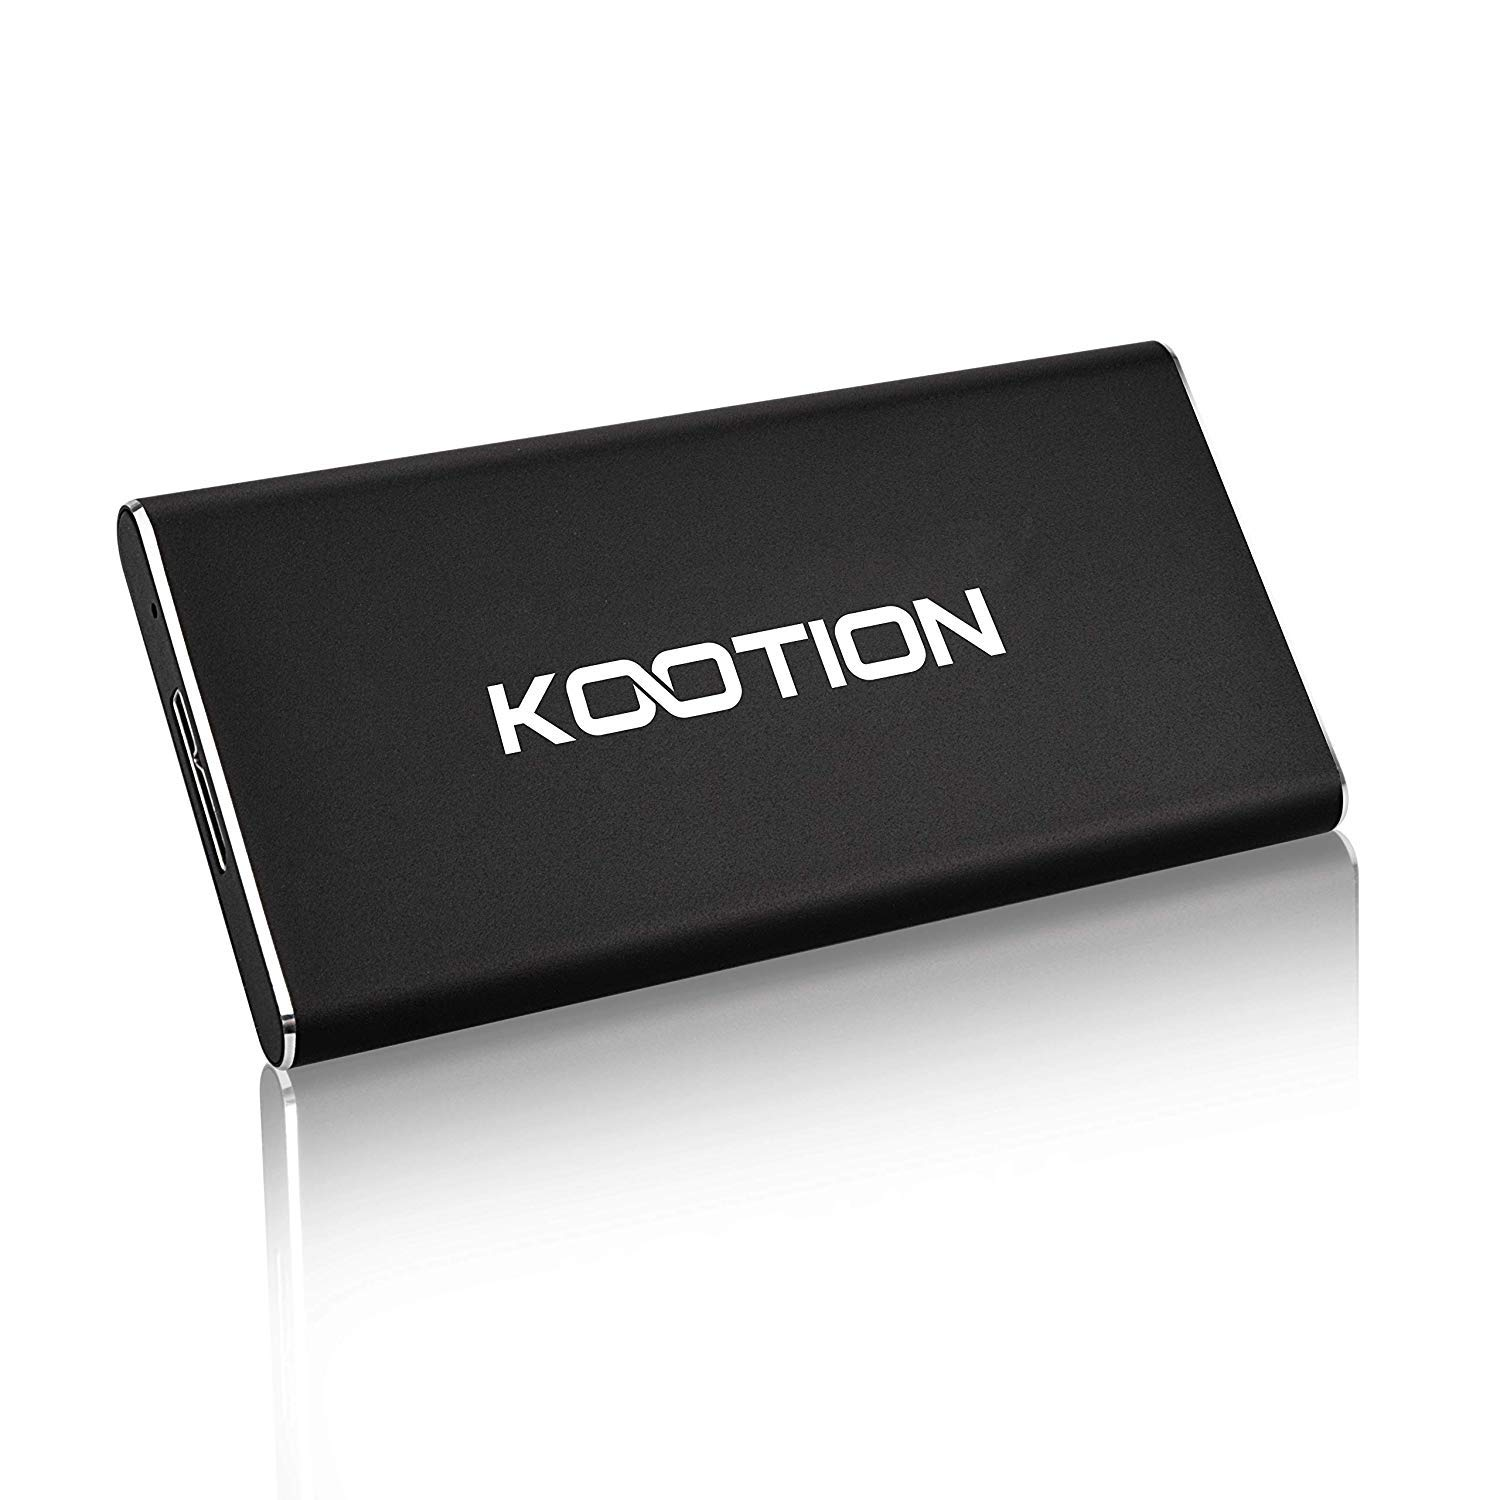 KOOTION 60GB Portable External SSD USB 3.0 High Speed Read & Write up to 400MB/s&300MB/s External Storage Ultra-Slim Solid State Drive for PC, Desktop, Laptop, MacBook by KOOTION (Image #1)